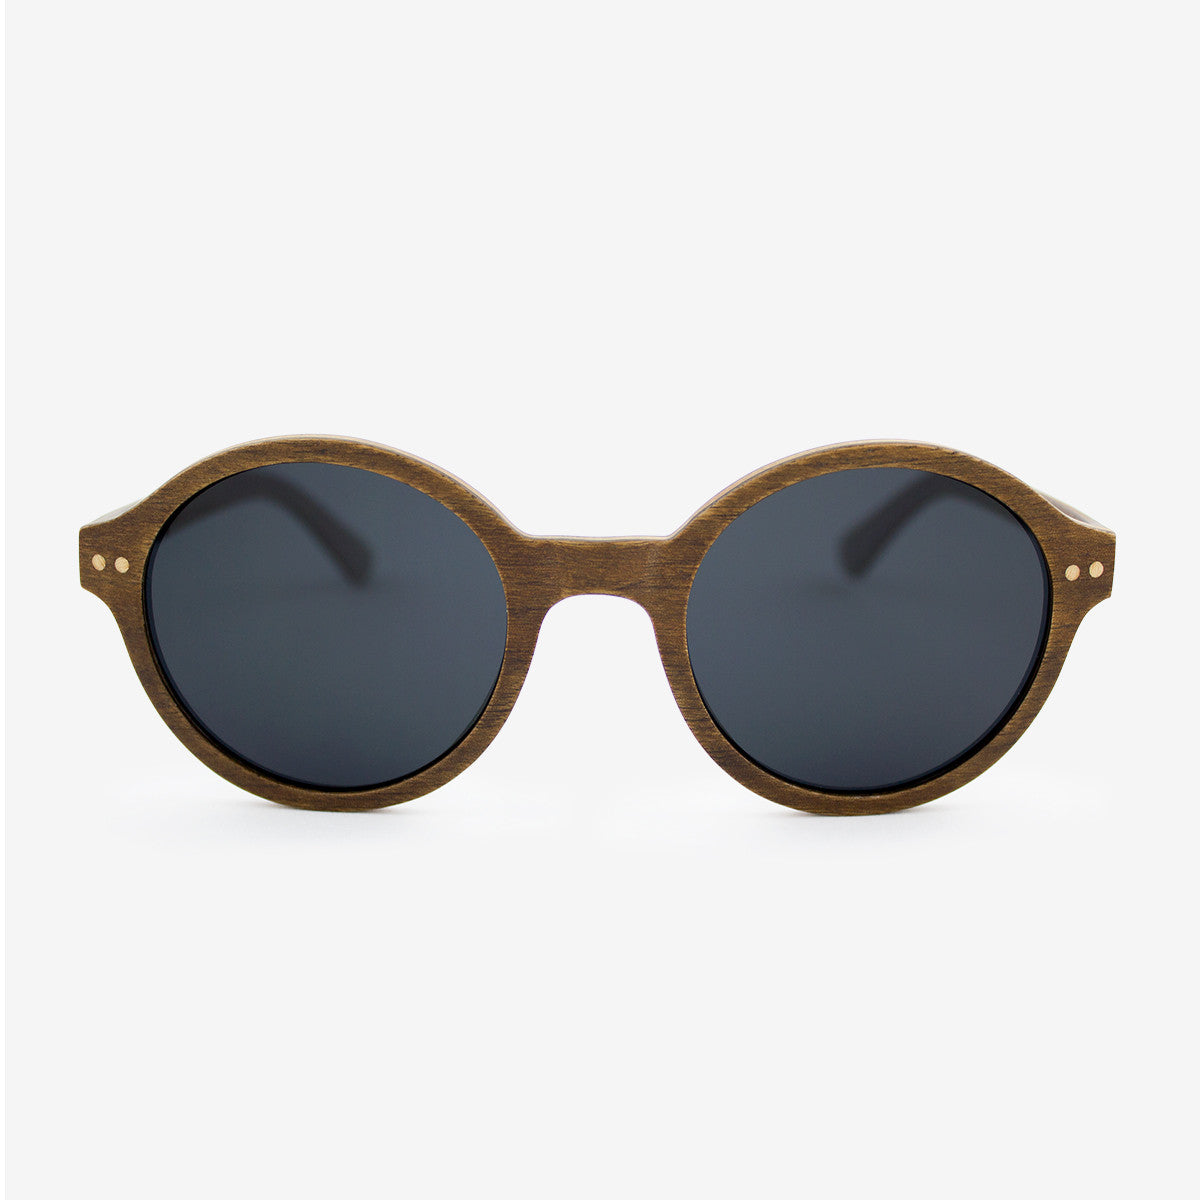 Gables walnut adjustable wood sunglasses with polarized lenses